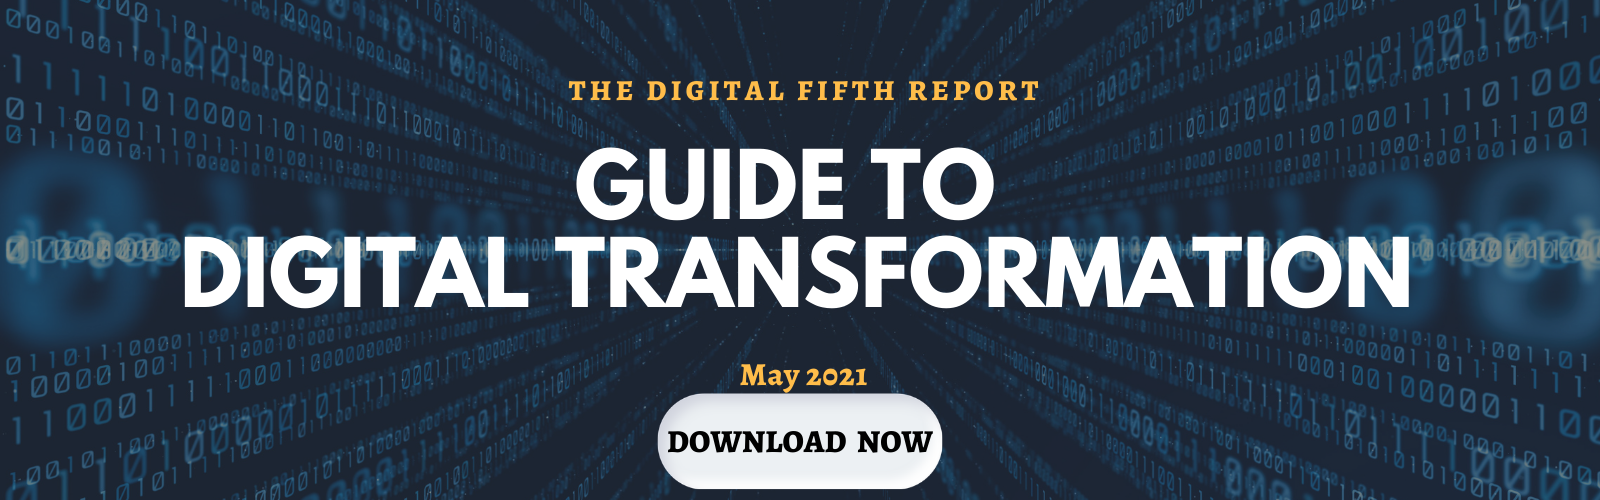 GUIDE TO DIGITAL TRANSFORMATION REPORT